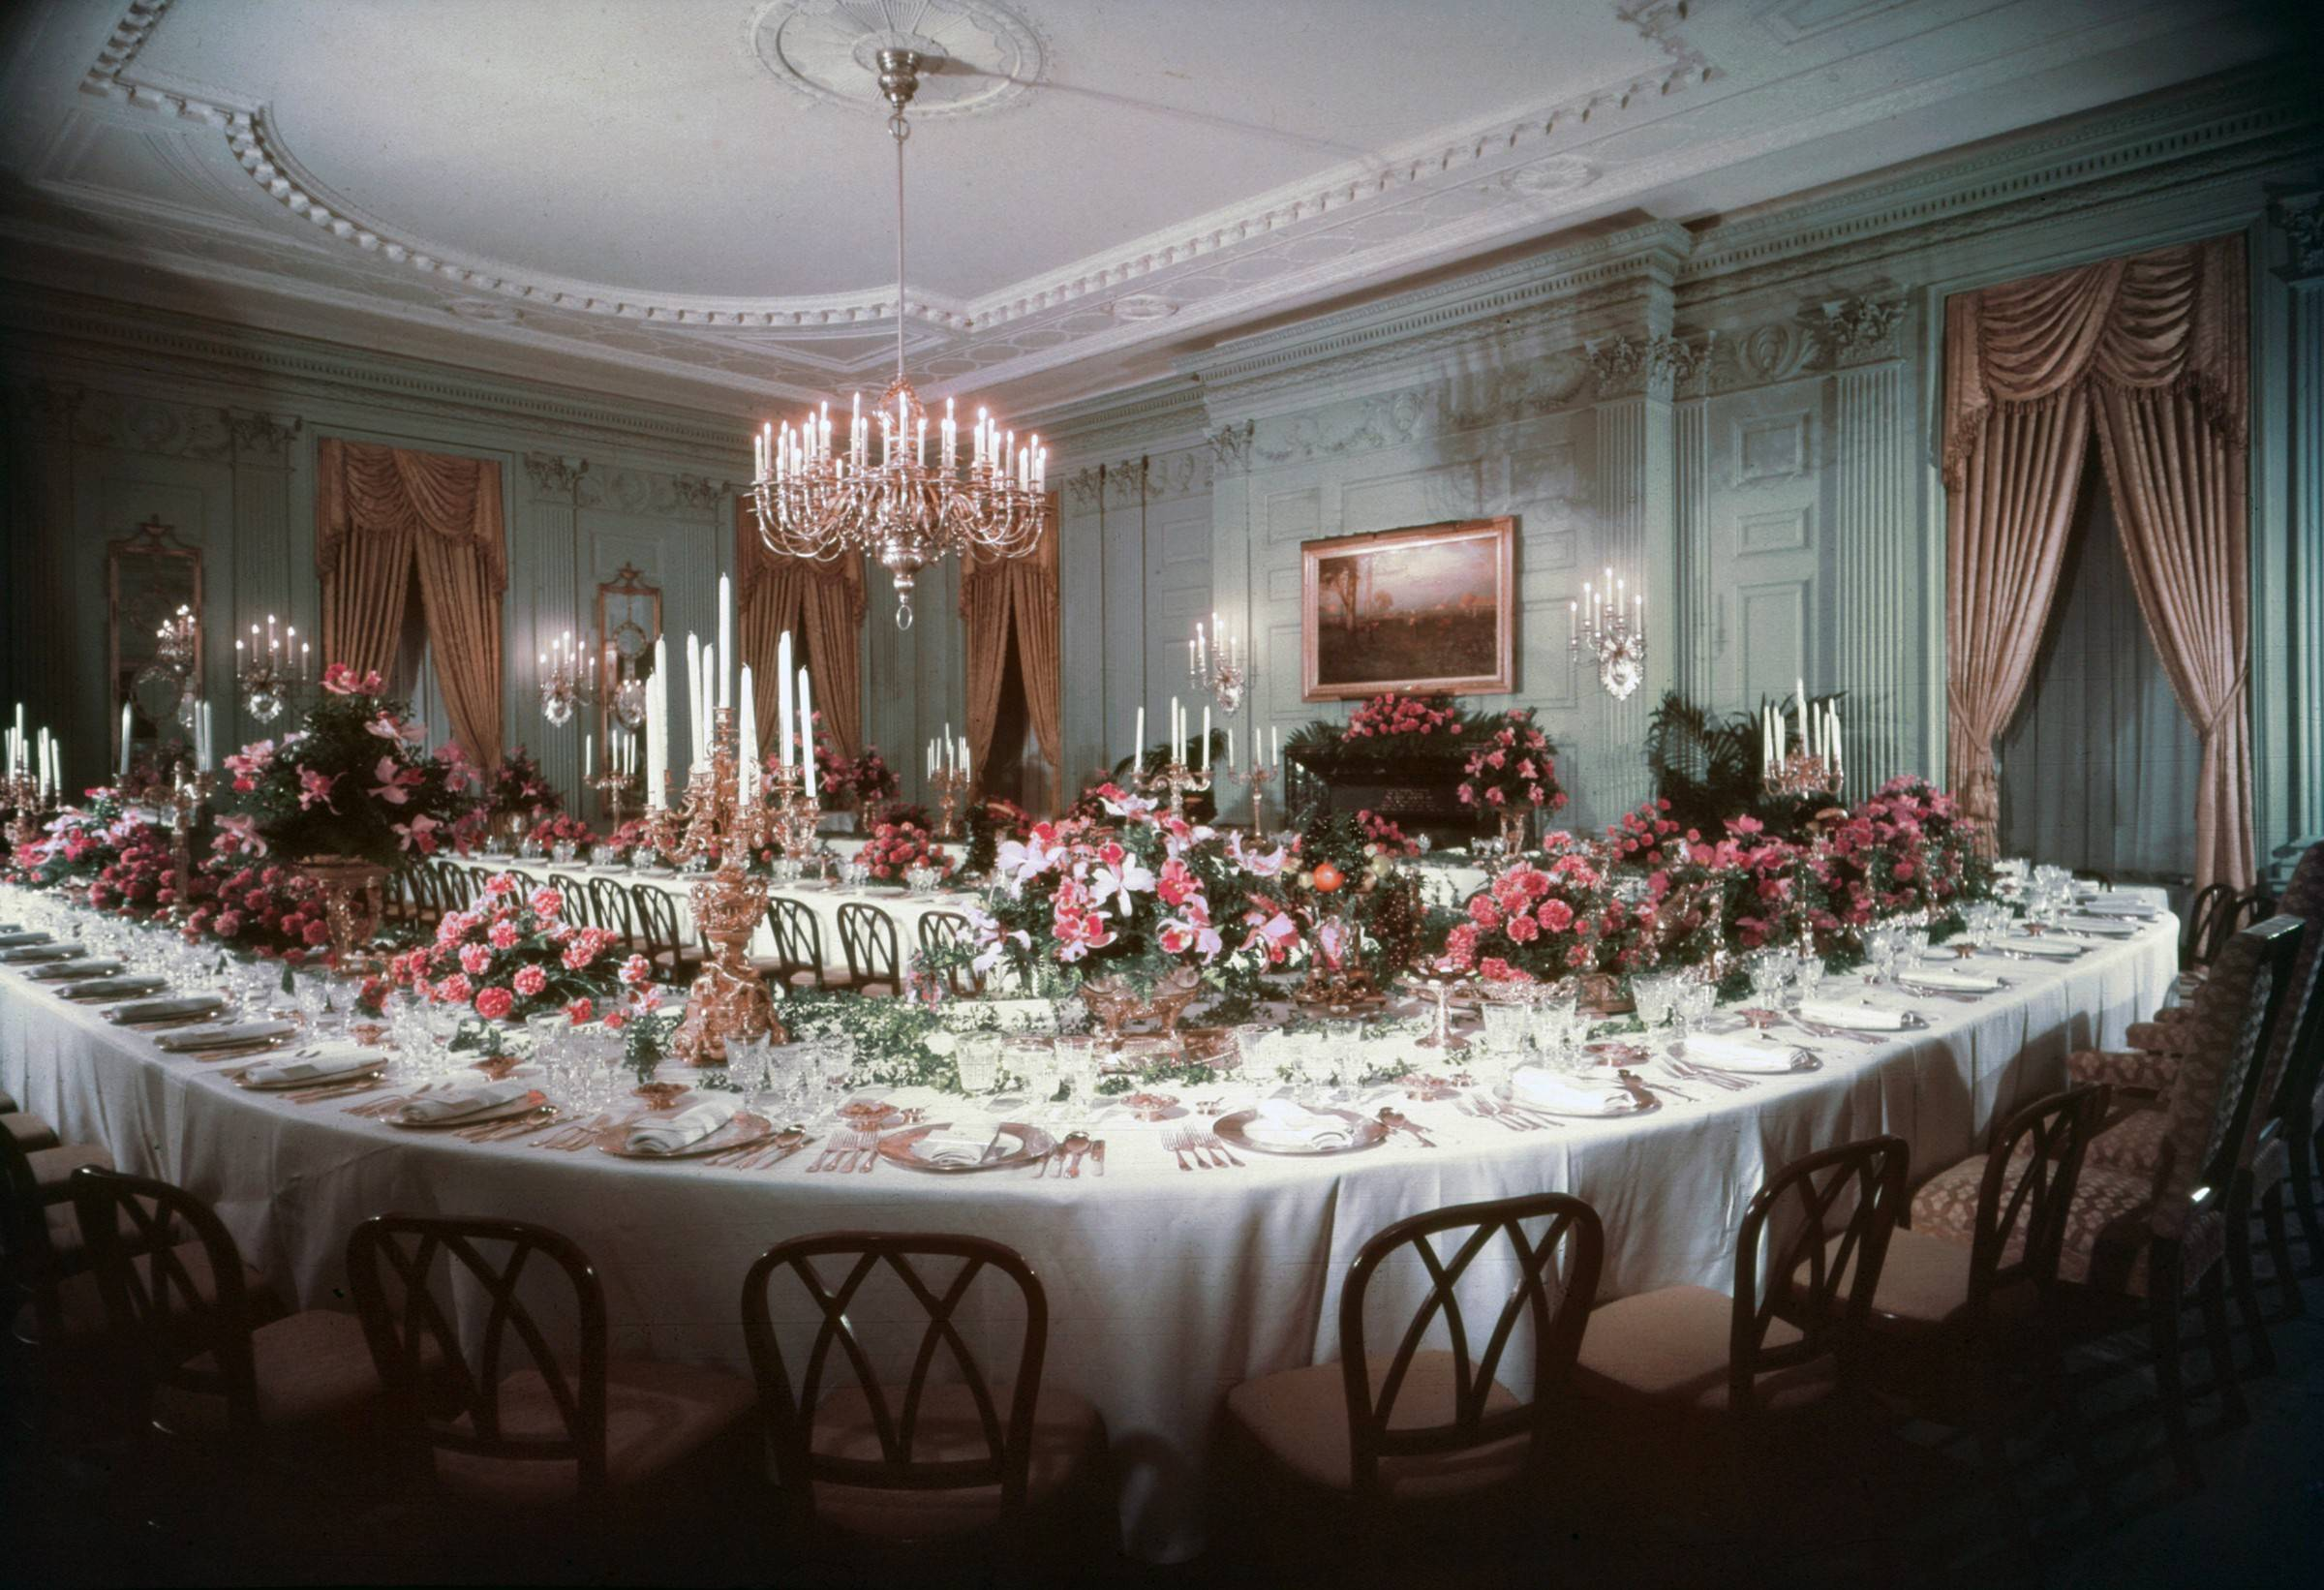 The White House's State Dining Room as it appeared in 1960 after the Truman renovation. The room is set up for a dinner with the king and queen of Denmark.